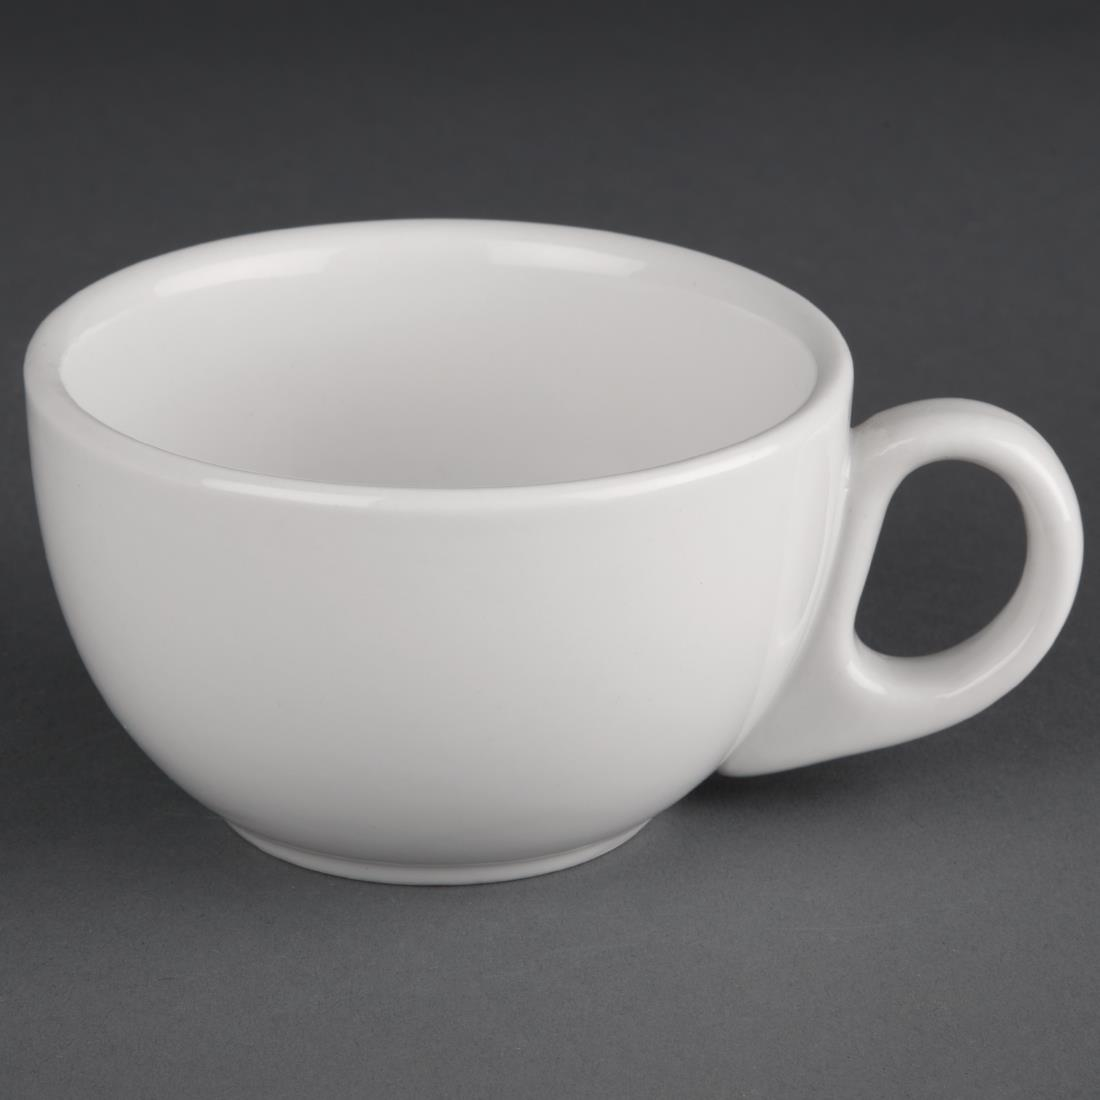 Image of Athena Hotelware Cappuccino Cups 220ml (Pack of 24) Pack of 24